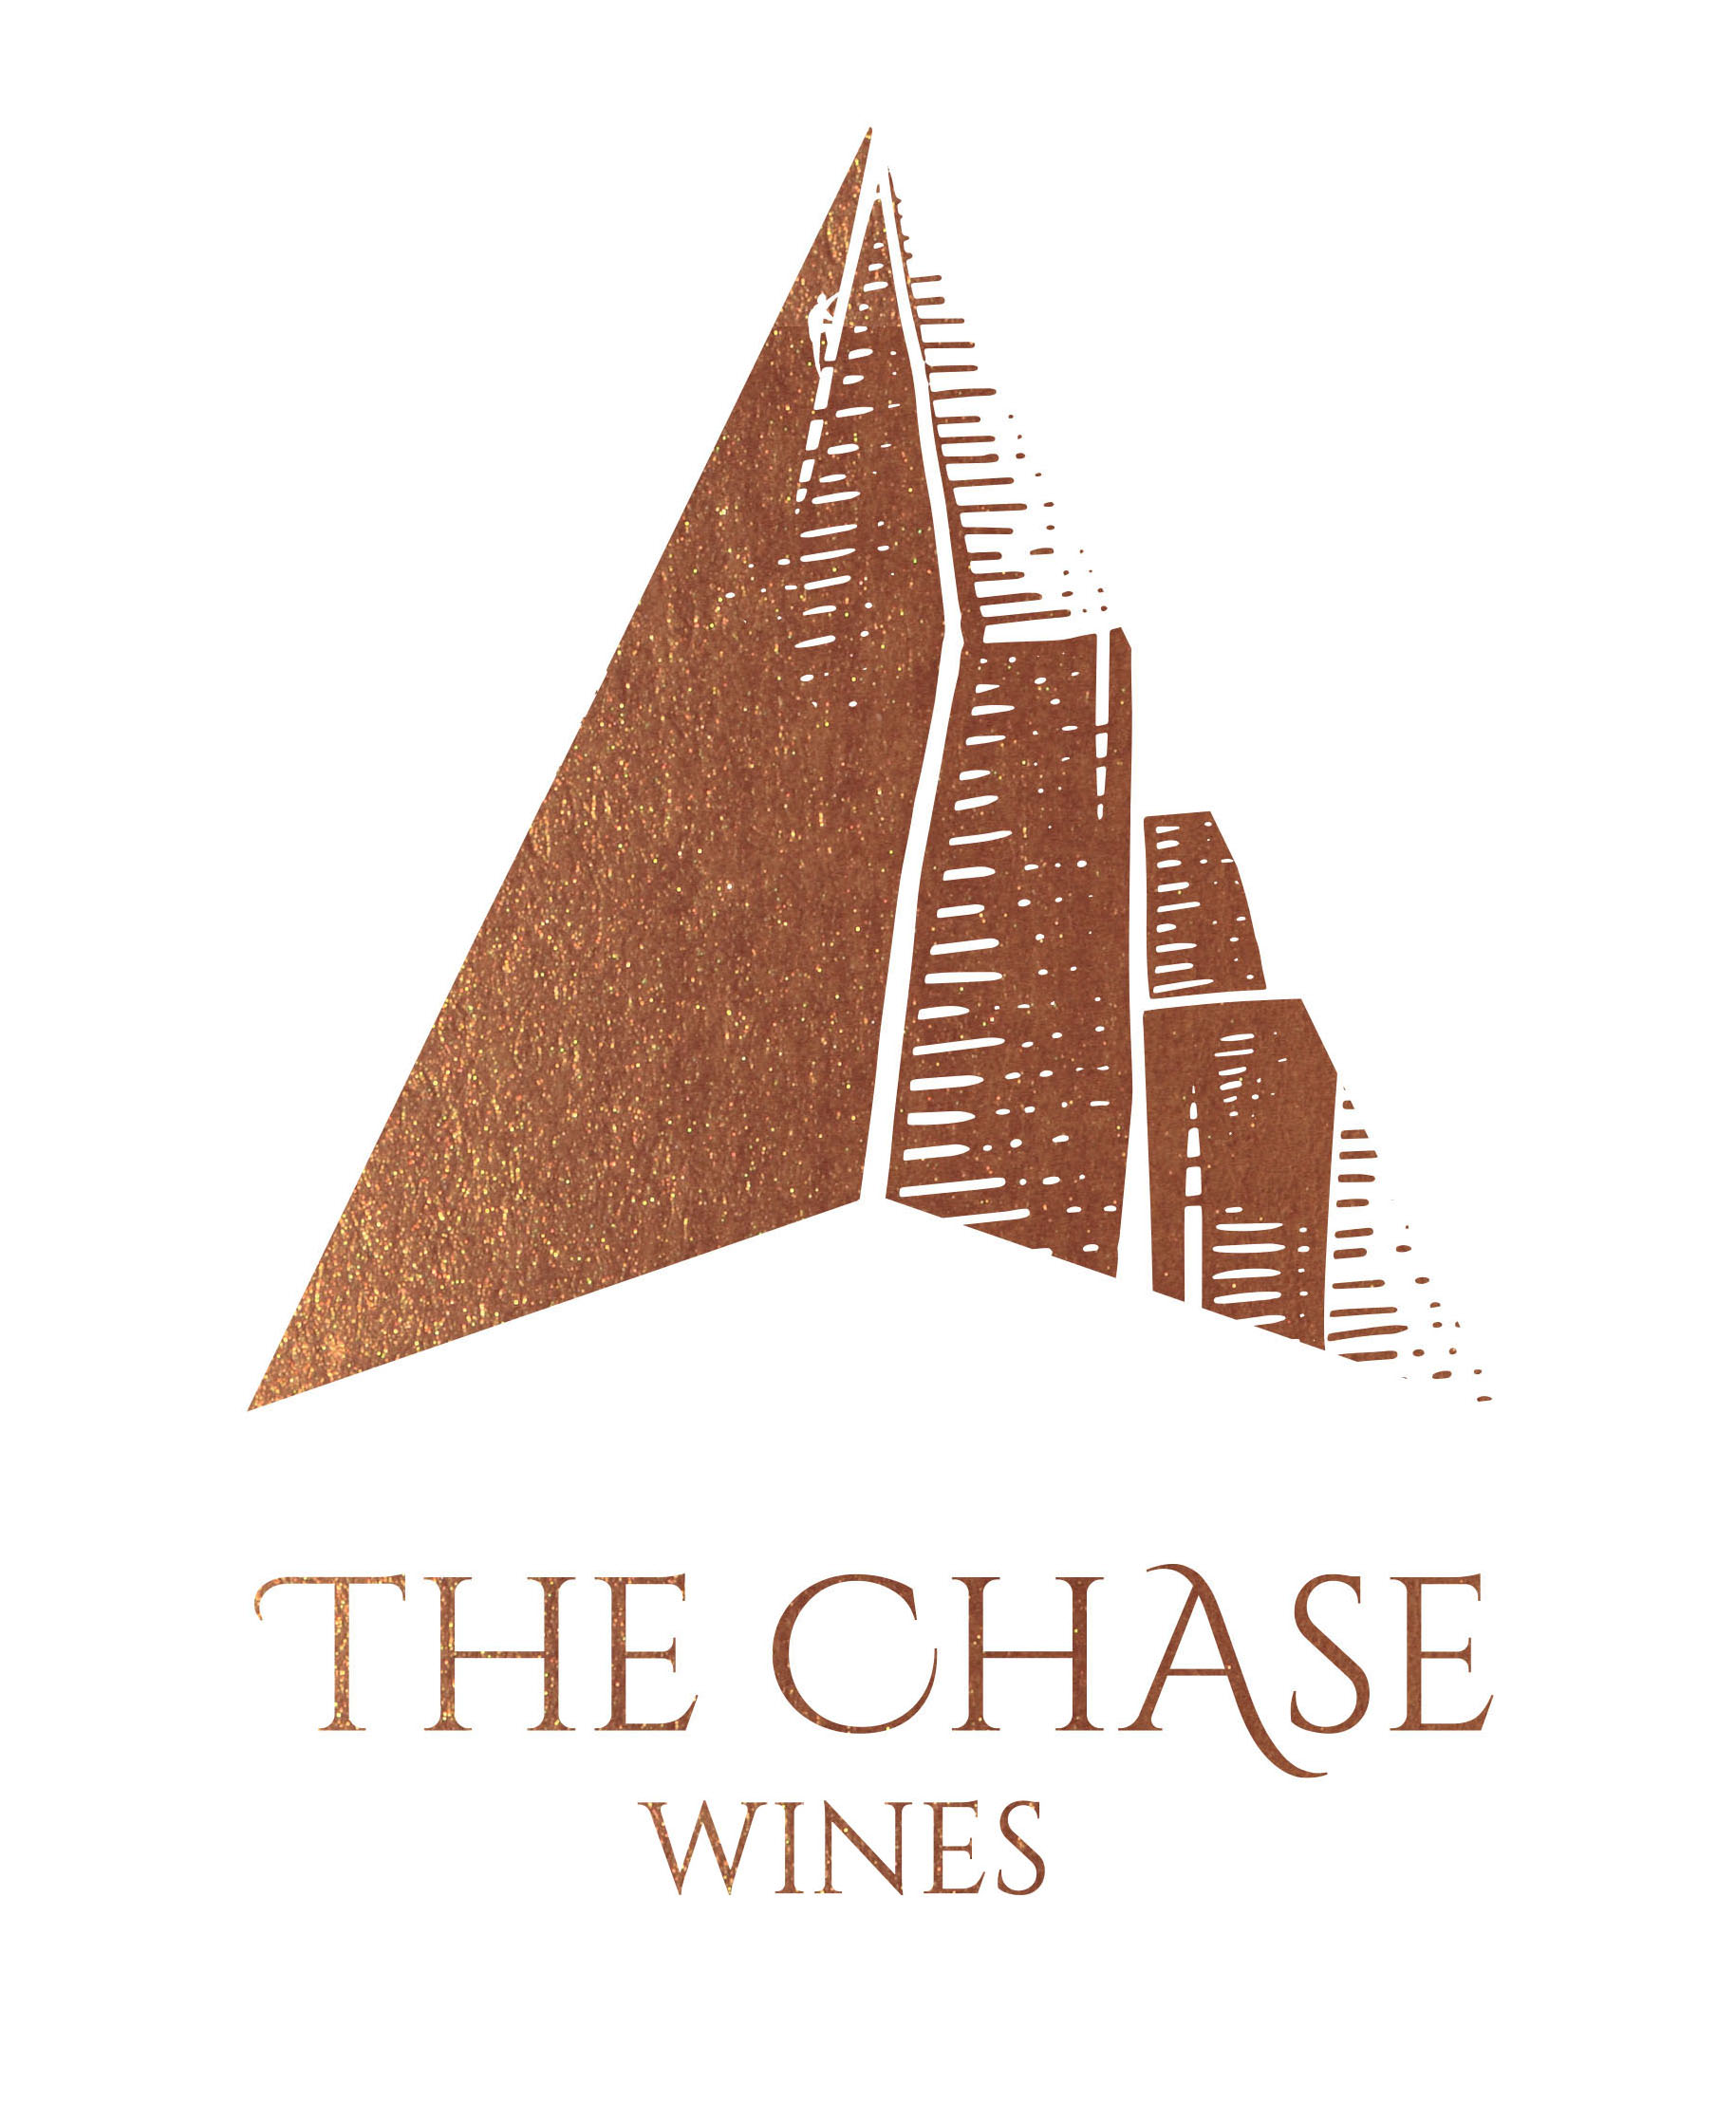 The Chase Wines logo